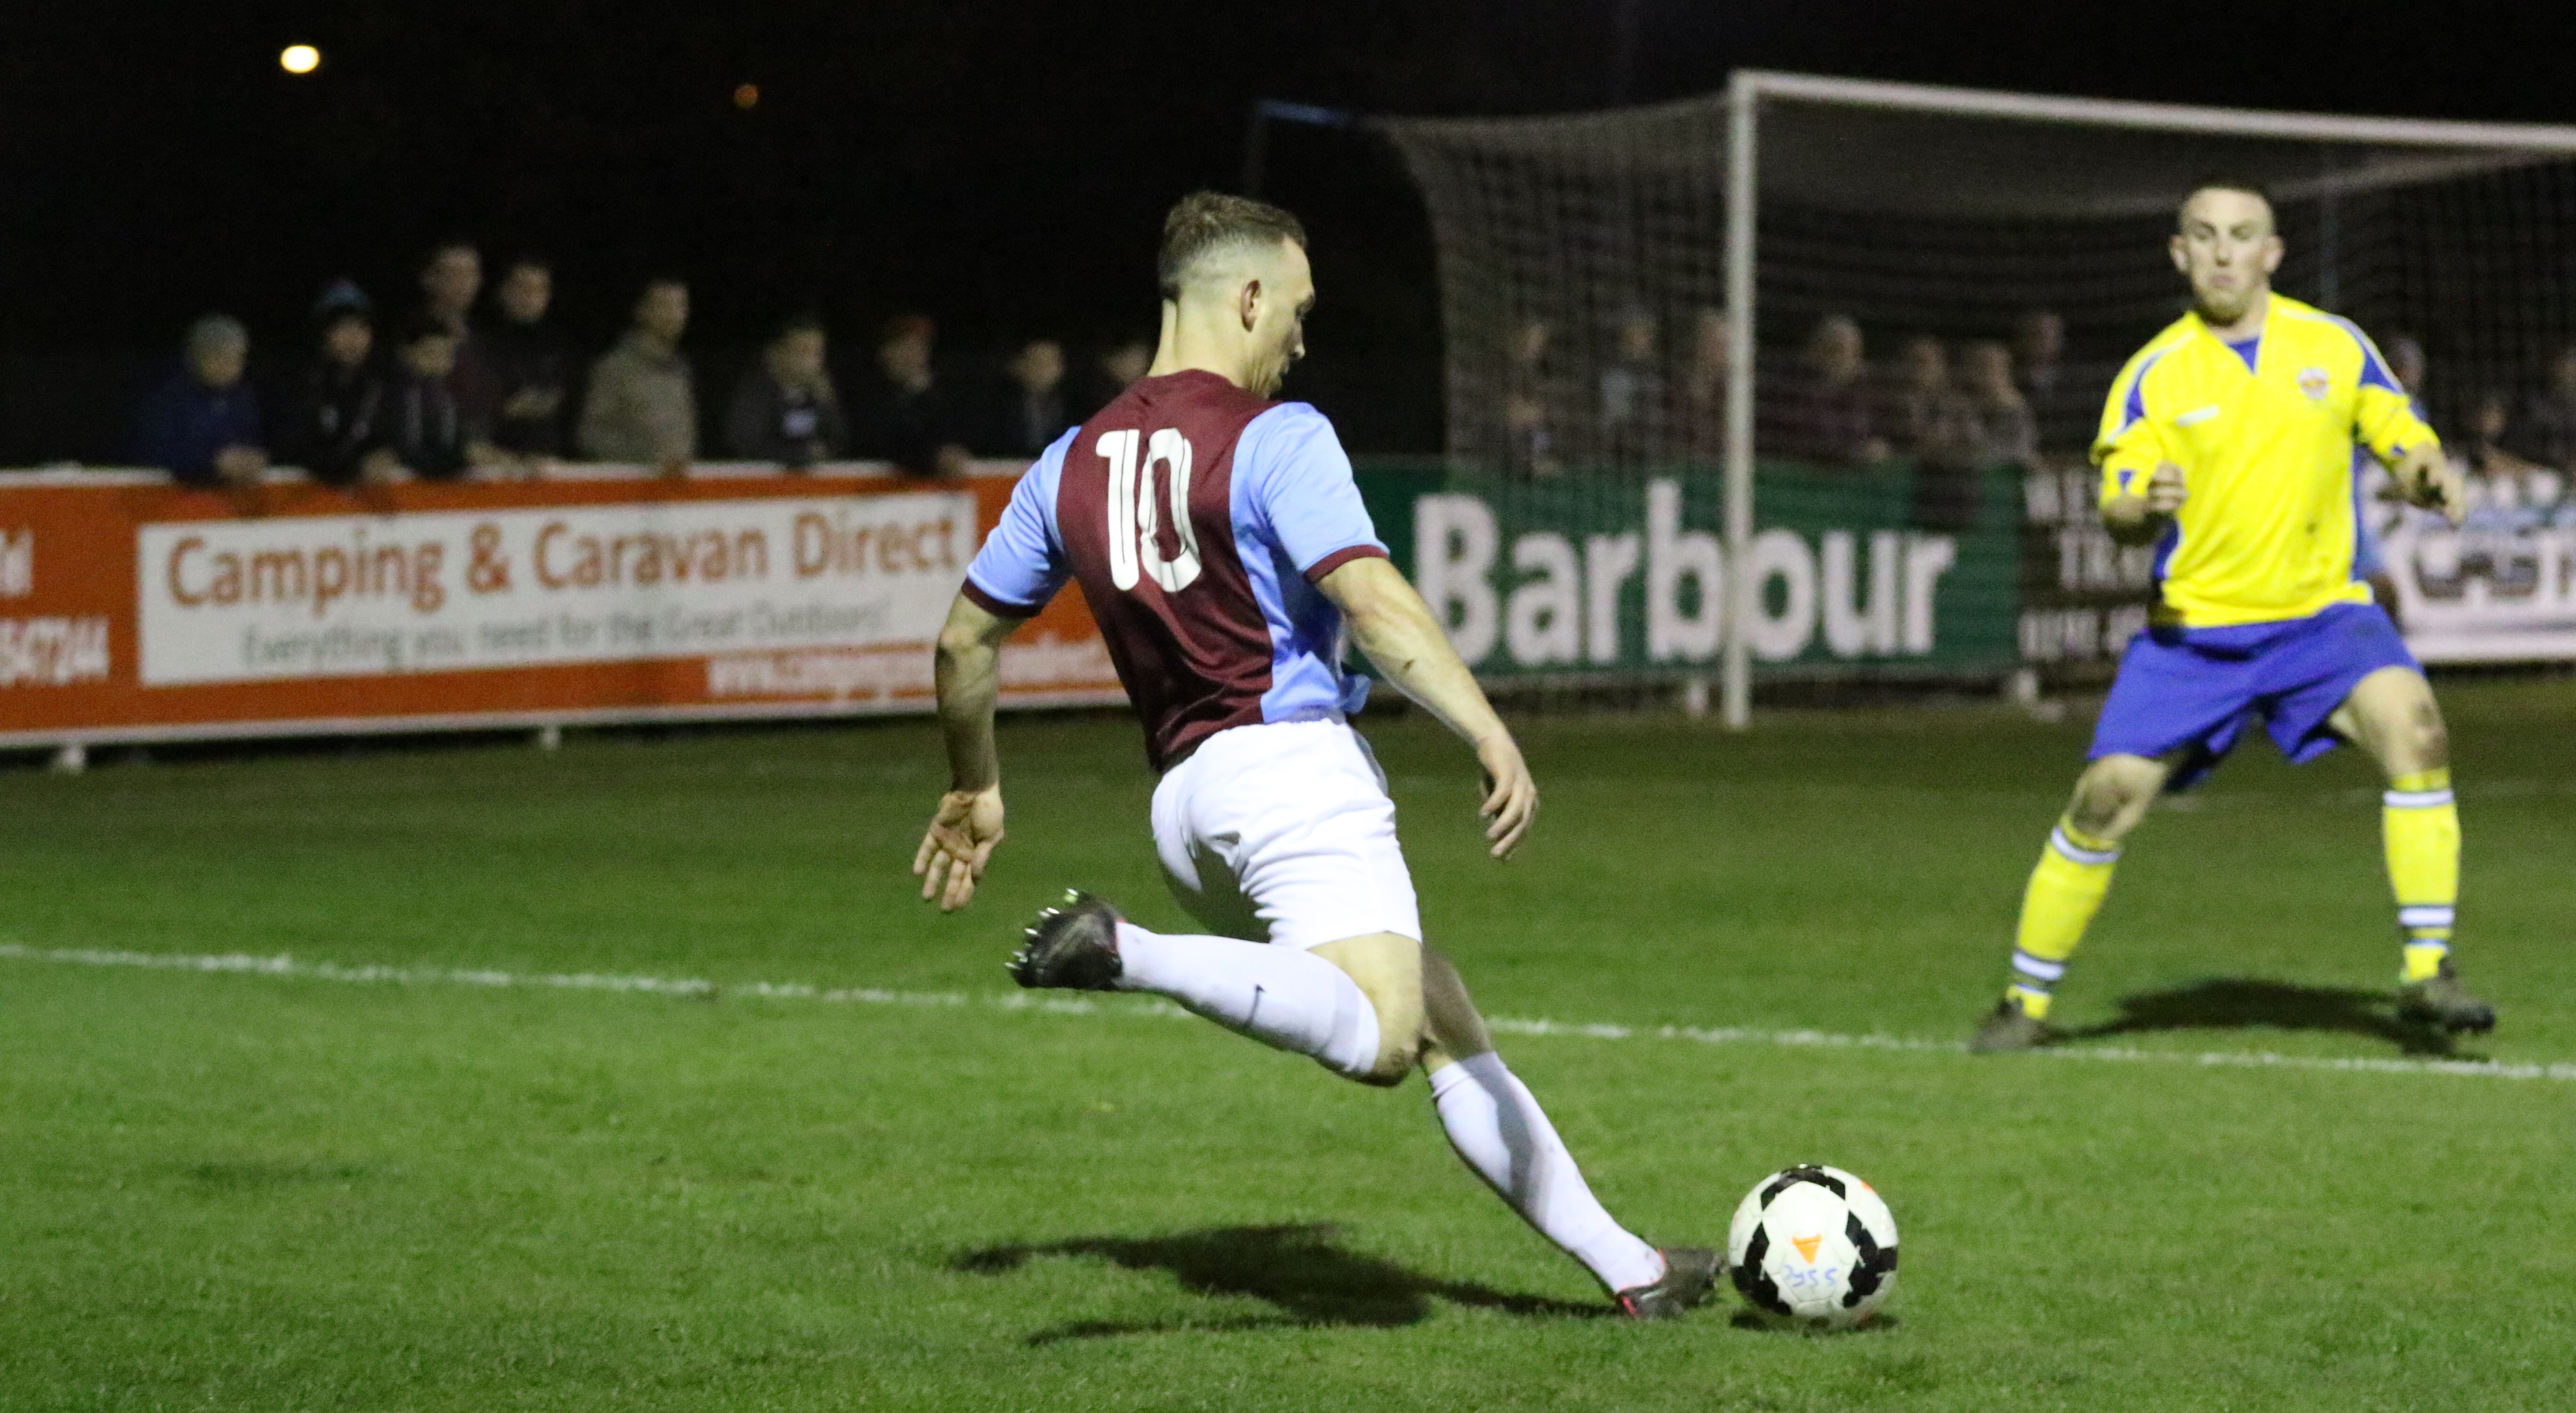 In Pictures: South Shields 2-1 Chester-le-Street